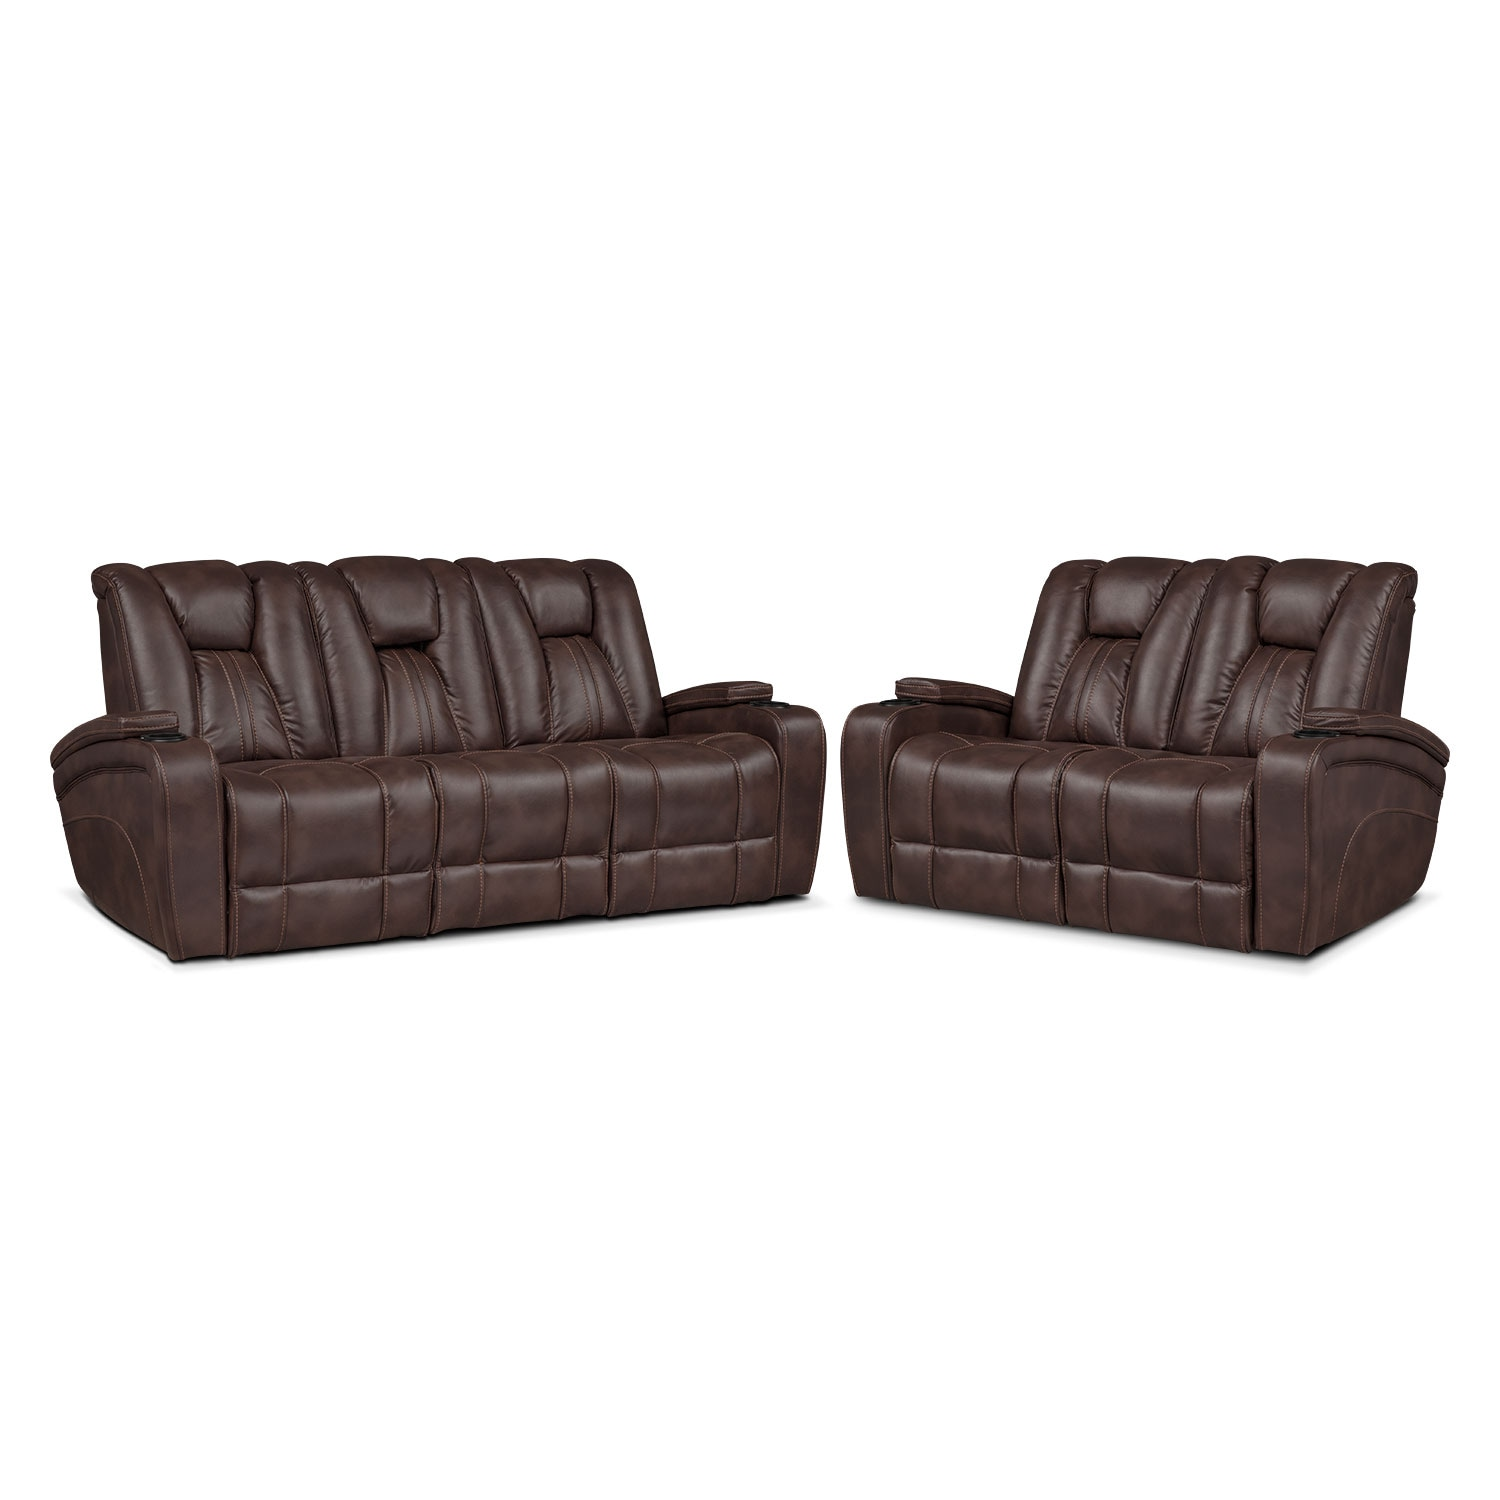 Pulsar dual power reclining sofa brown value city Power reclining sofas and loveseats